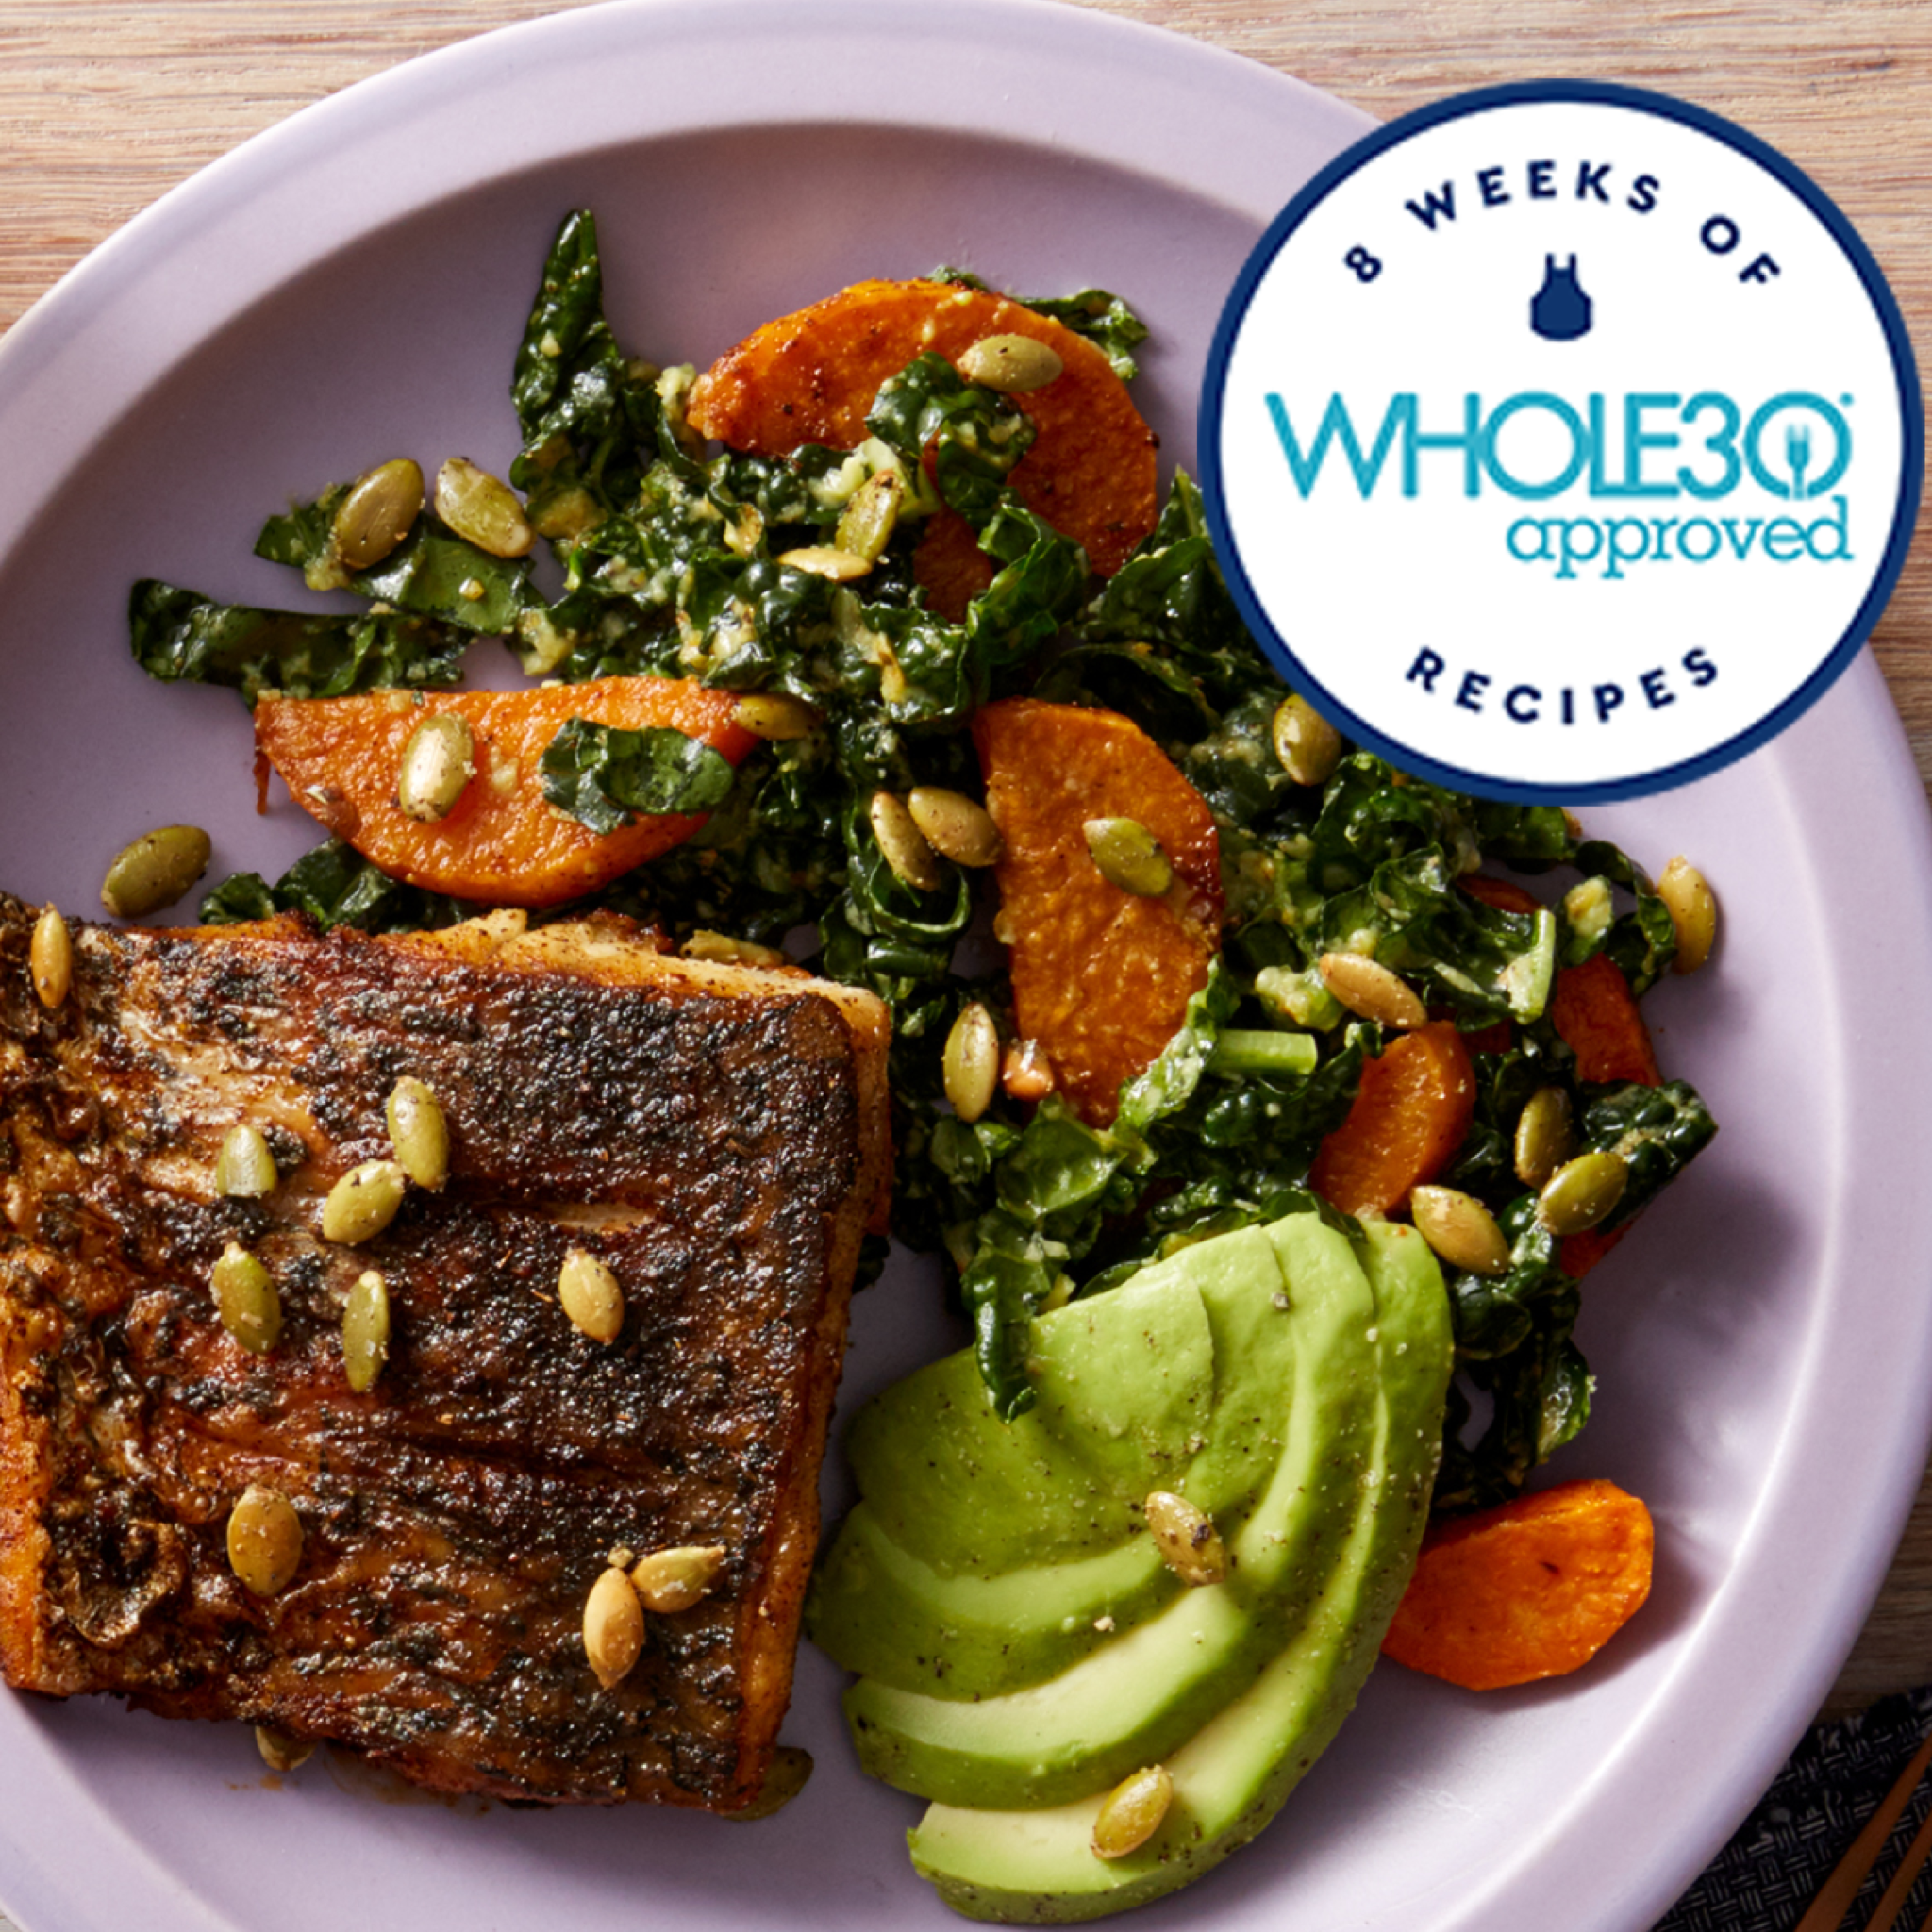 Blue Apron Meal Delivery Meets Whole30